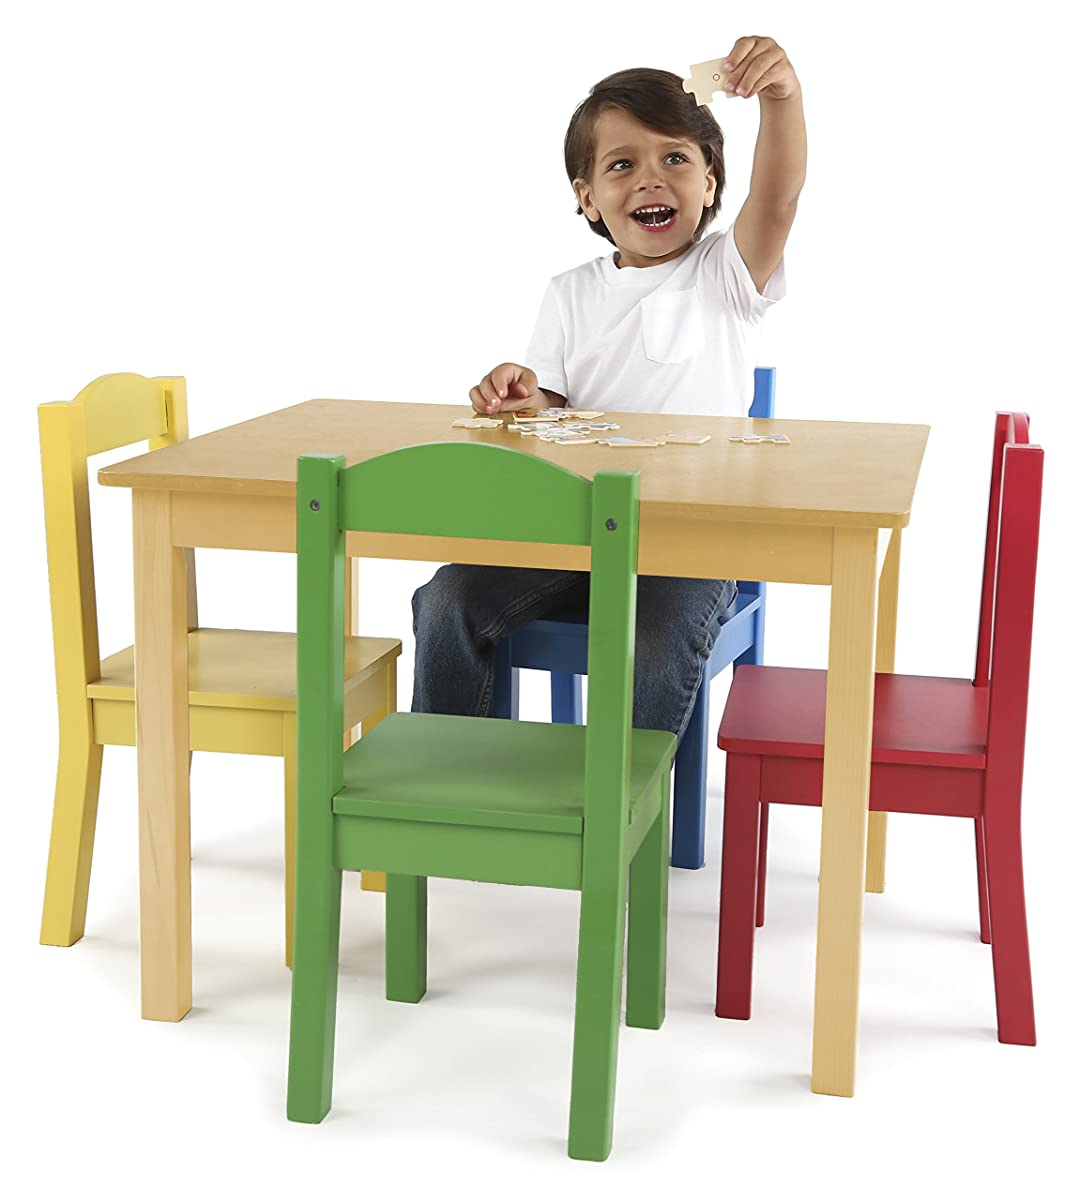 American Kids 5 Piece Wood Table And Chair Set Multiple: Tot Tutors Kids Wood Table And 4 Chairs Set, Natural